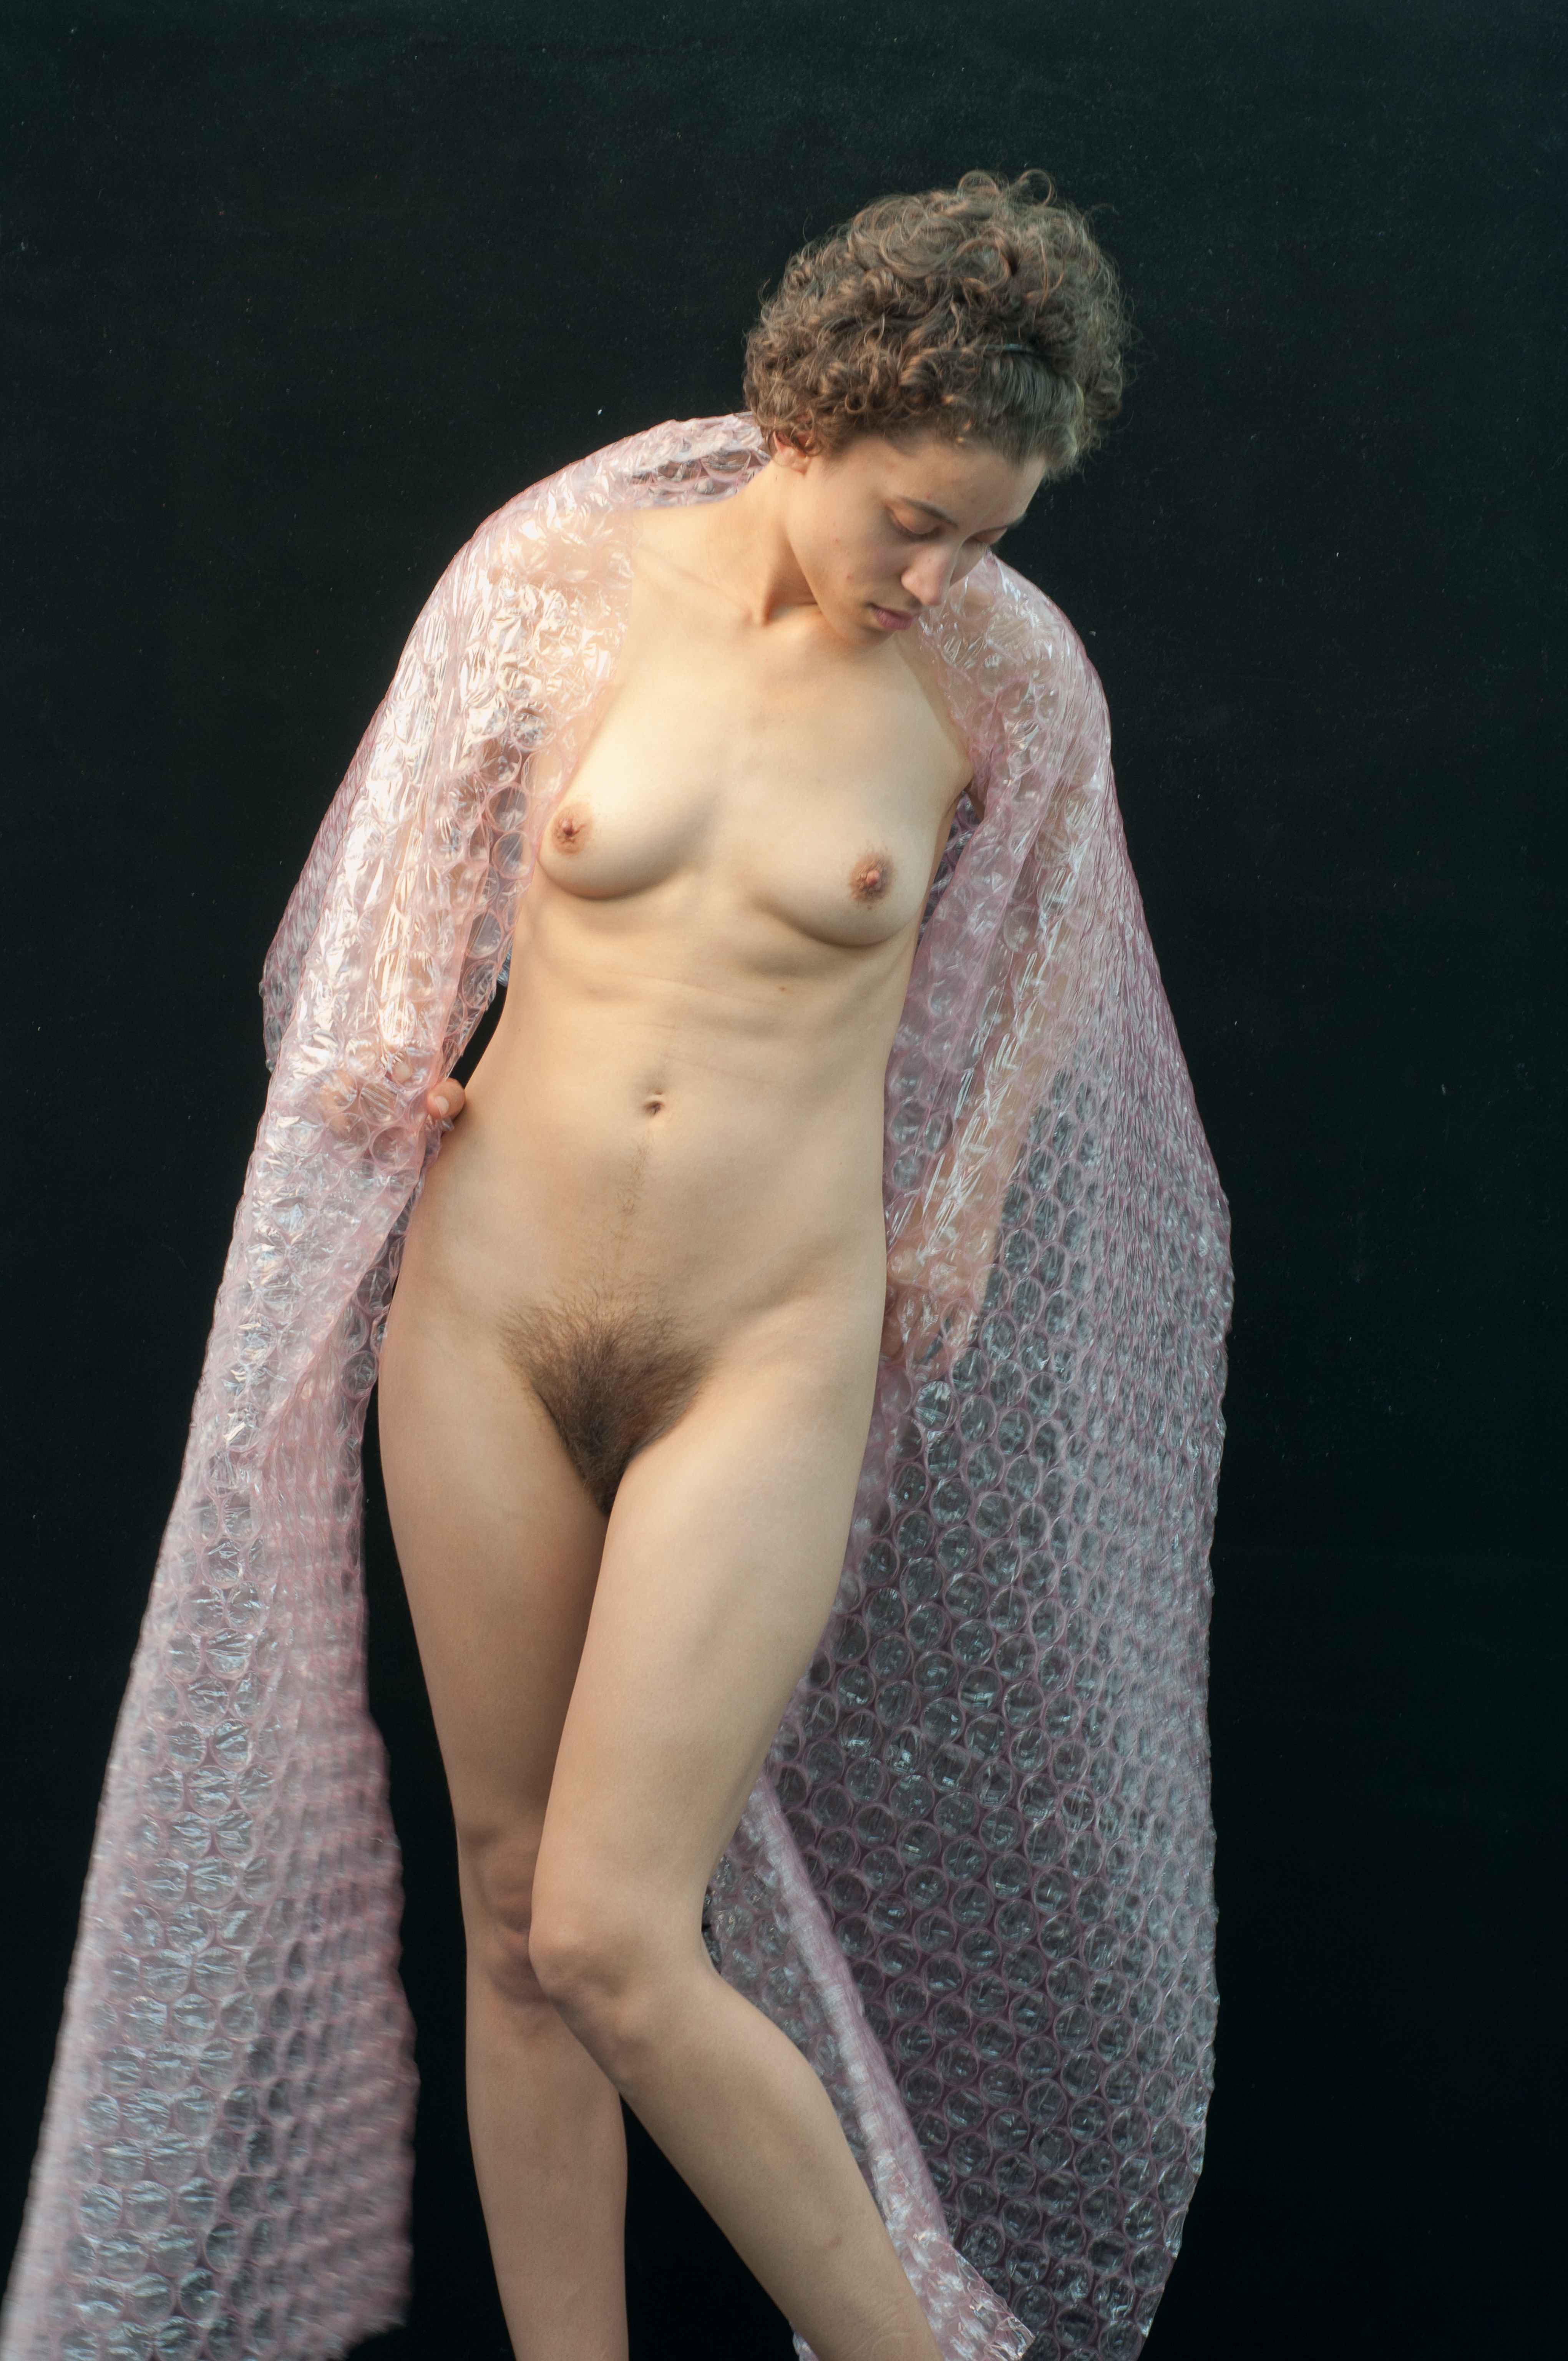 model in bubble wrap 6 by amdgfinearts d3588nn Related tags: nn asian models, coed stripping ohio state, nn asian models, ...